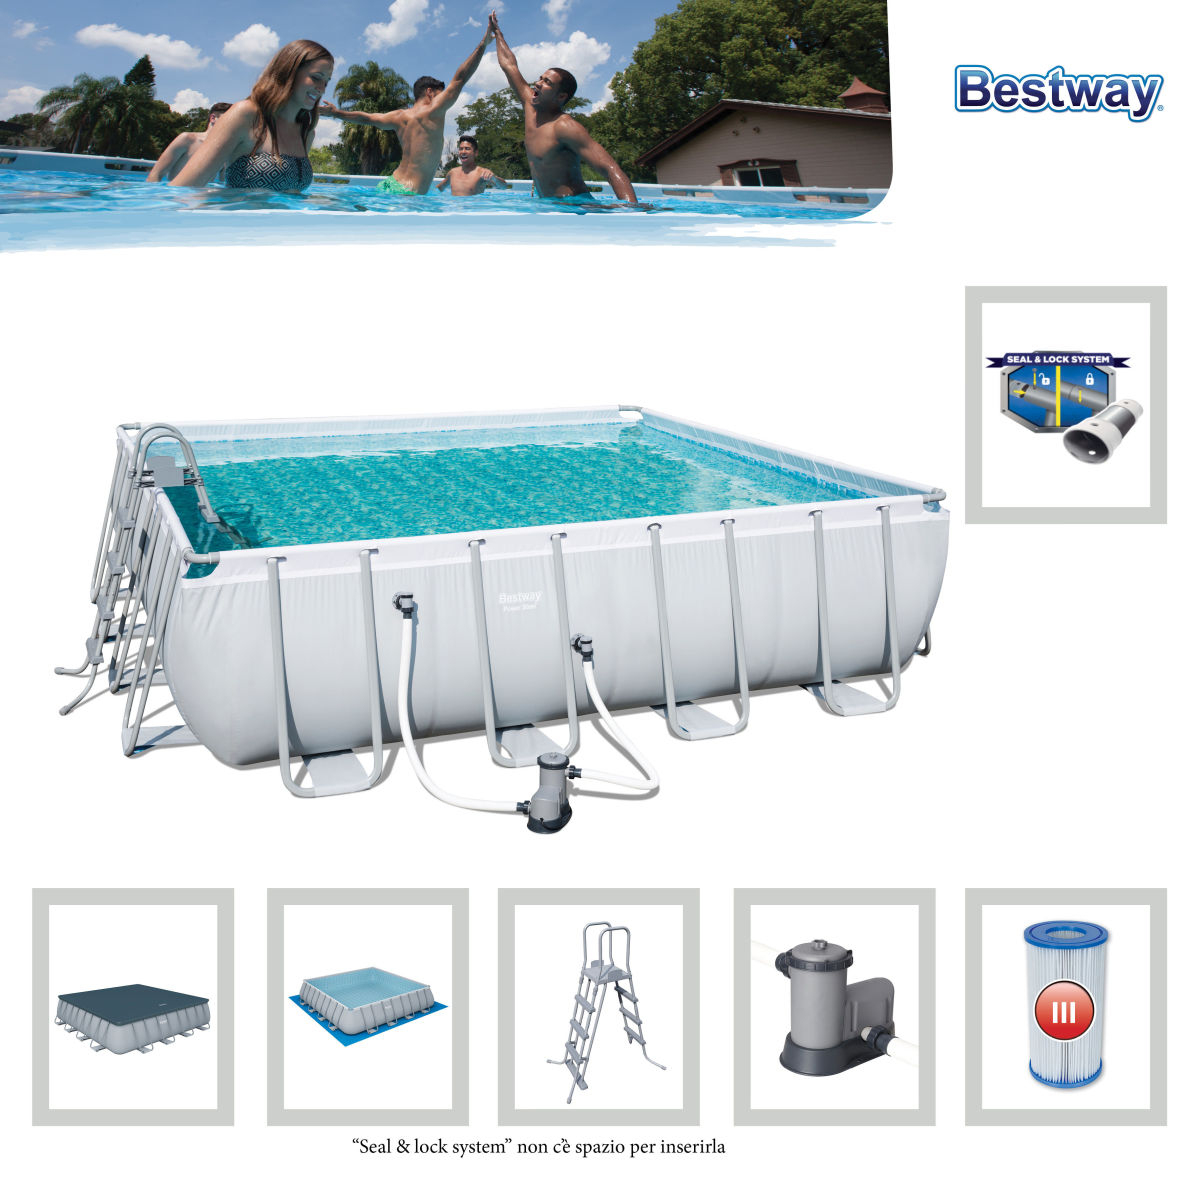 56626 - 4.88M X 4.88M X 1.22M Kit Piscine Tubulaire Power ... pour Piscine Tubulaire Carrée